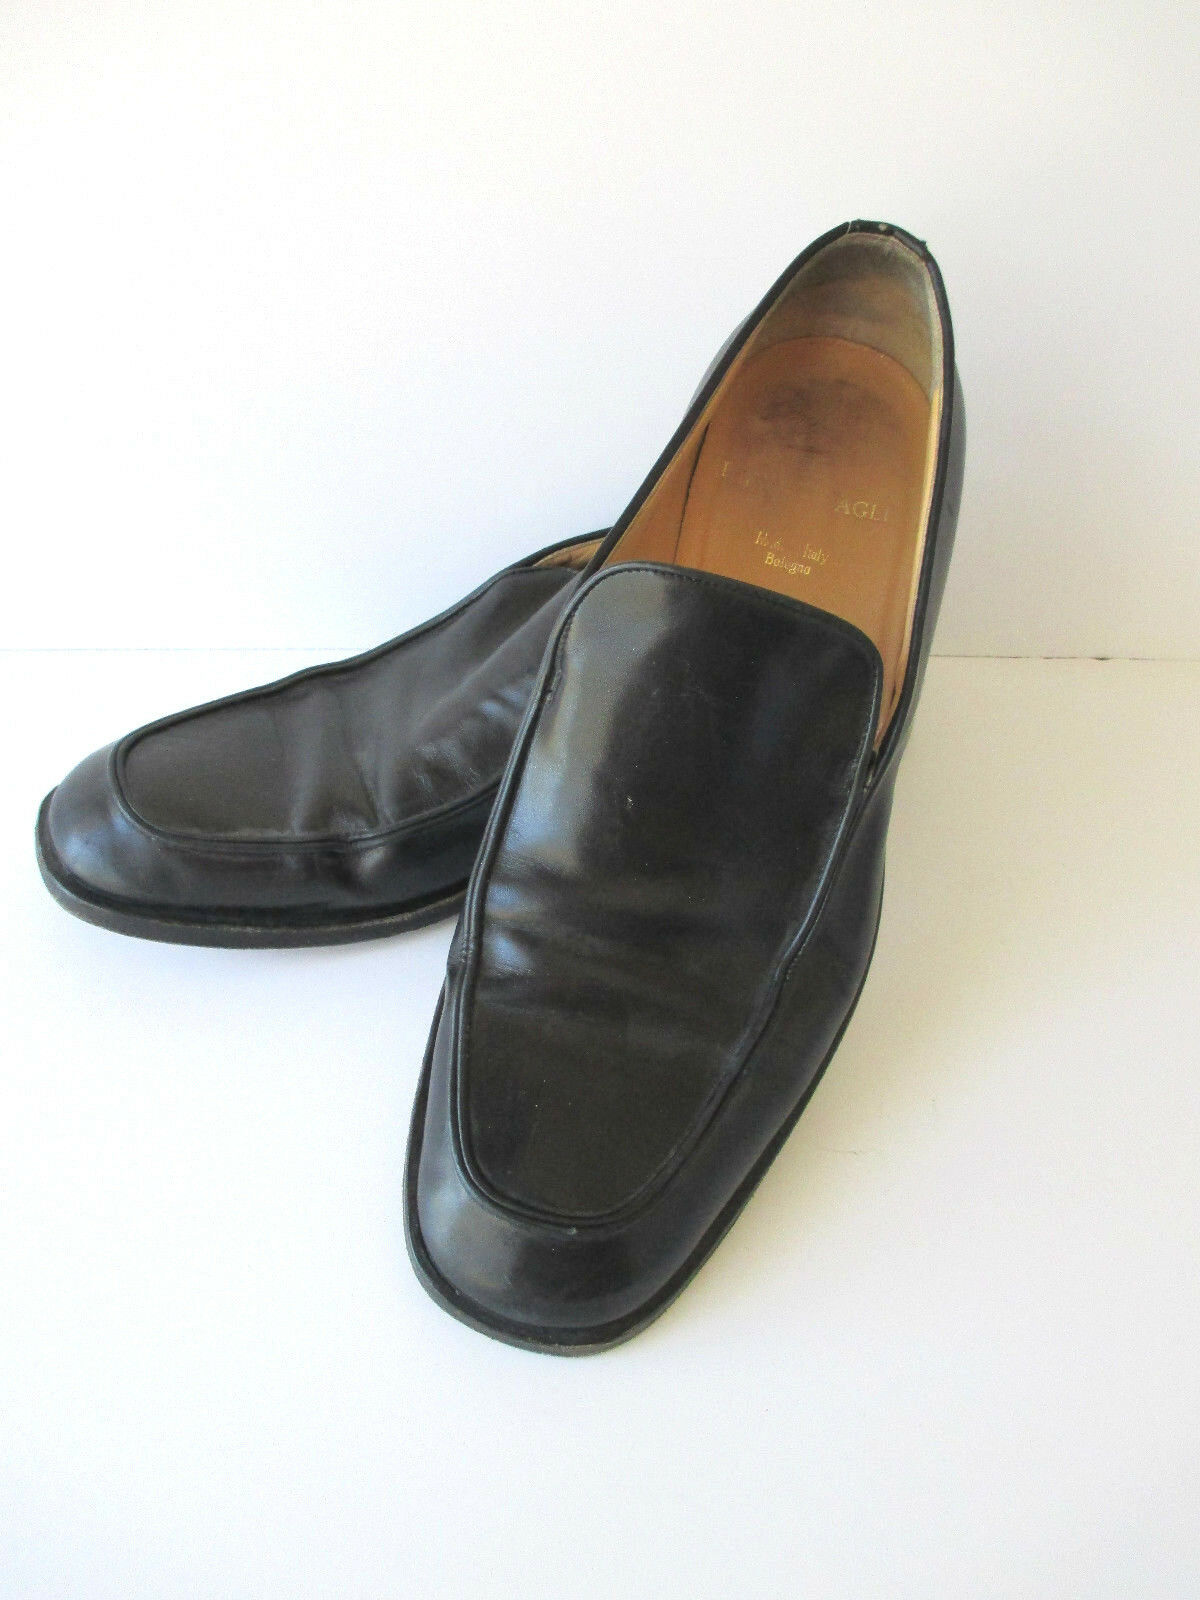 Bruno Magli Men's Loafers shoes 10.5M Black Leather Made in